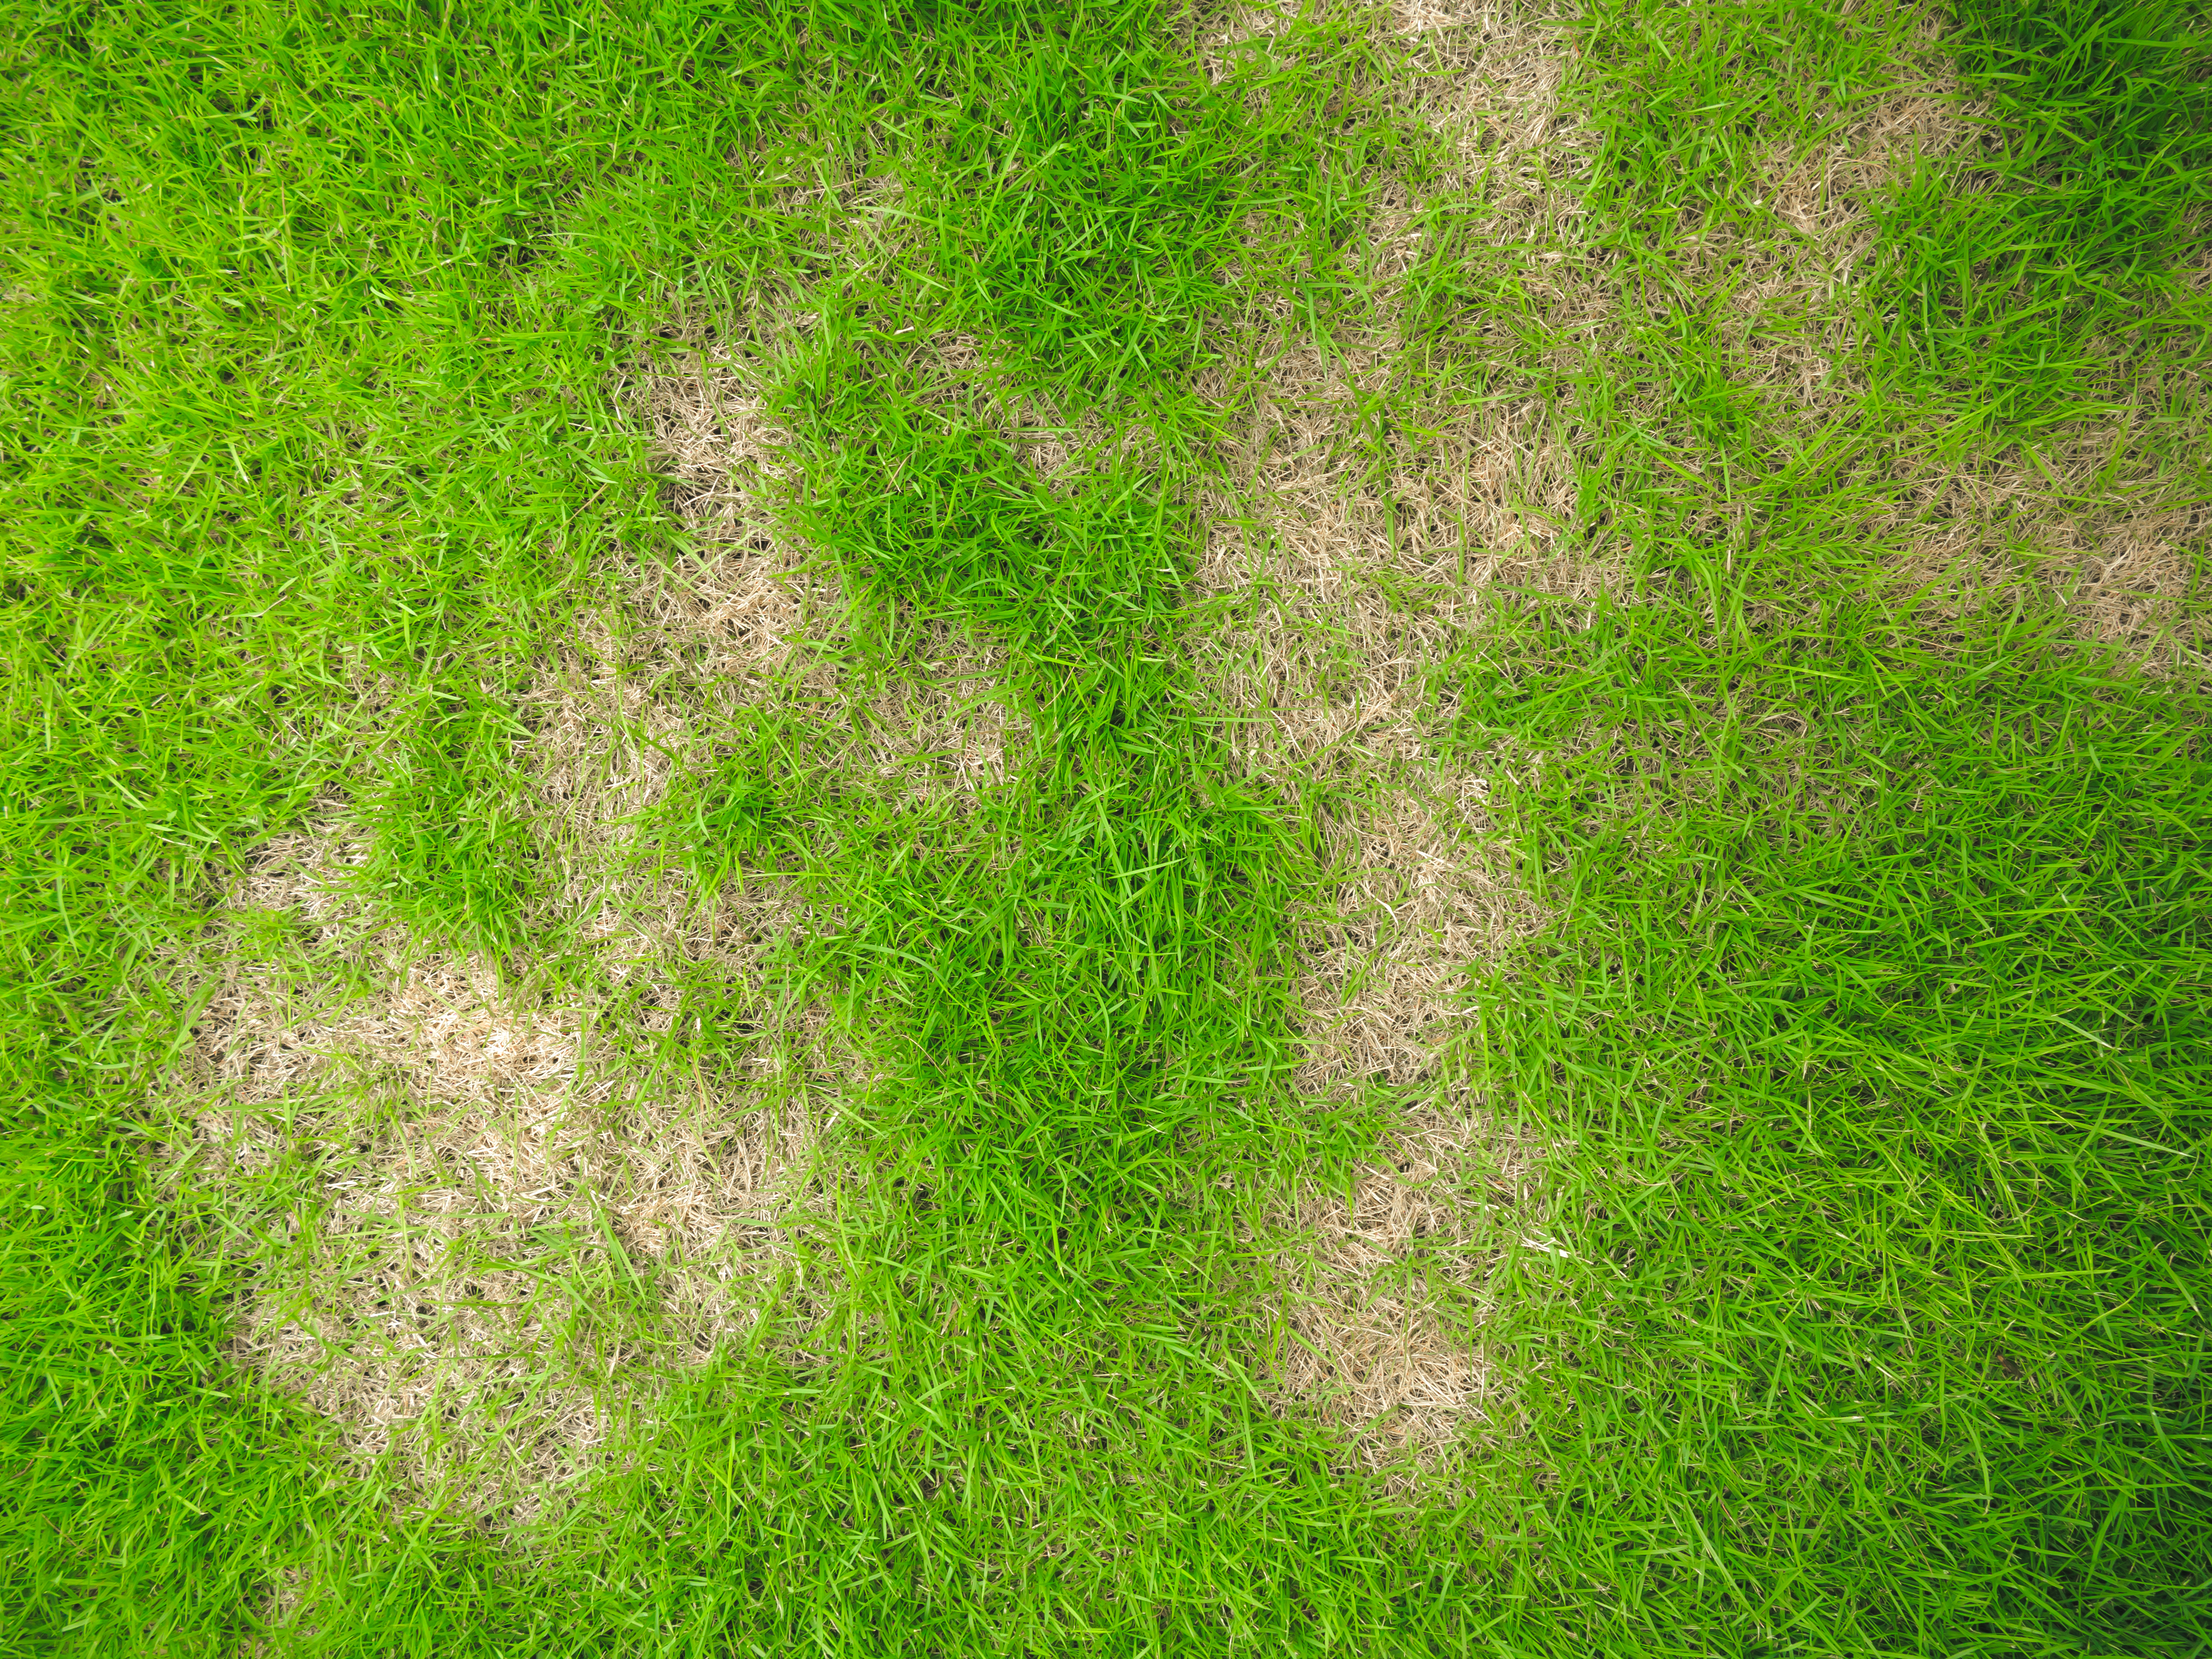 lawn pests, common lawn pests, lawn care, yard help, yard tips, dead grass, brown spots on grass